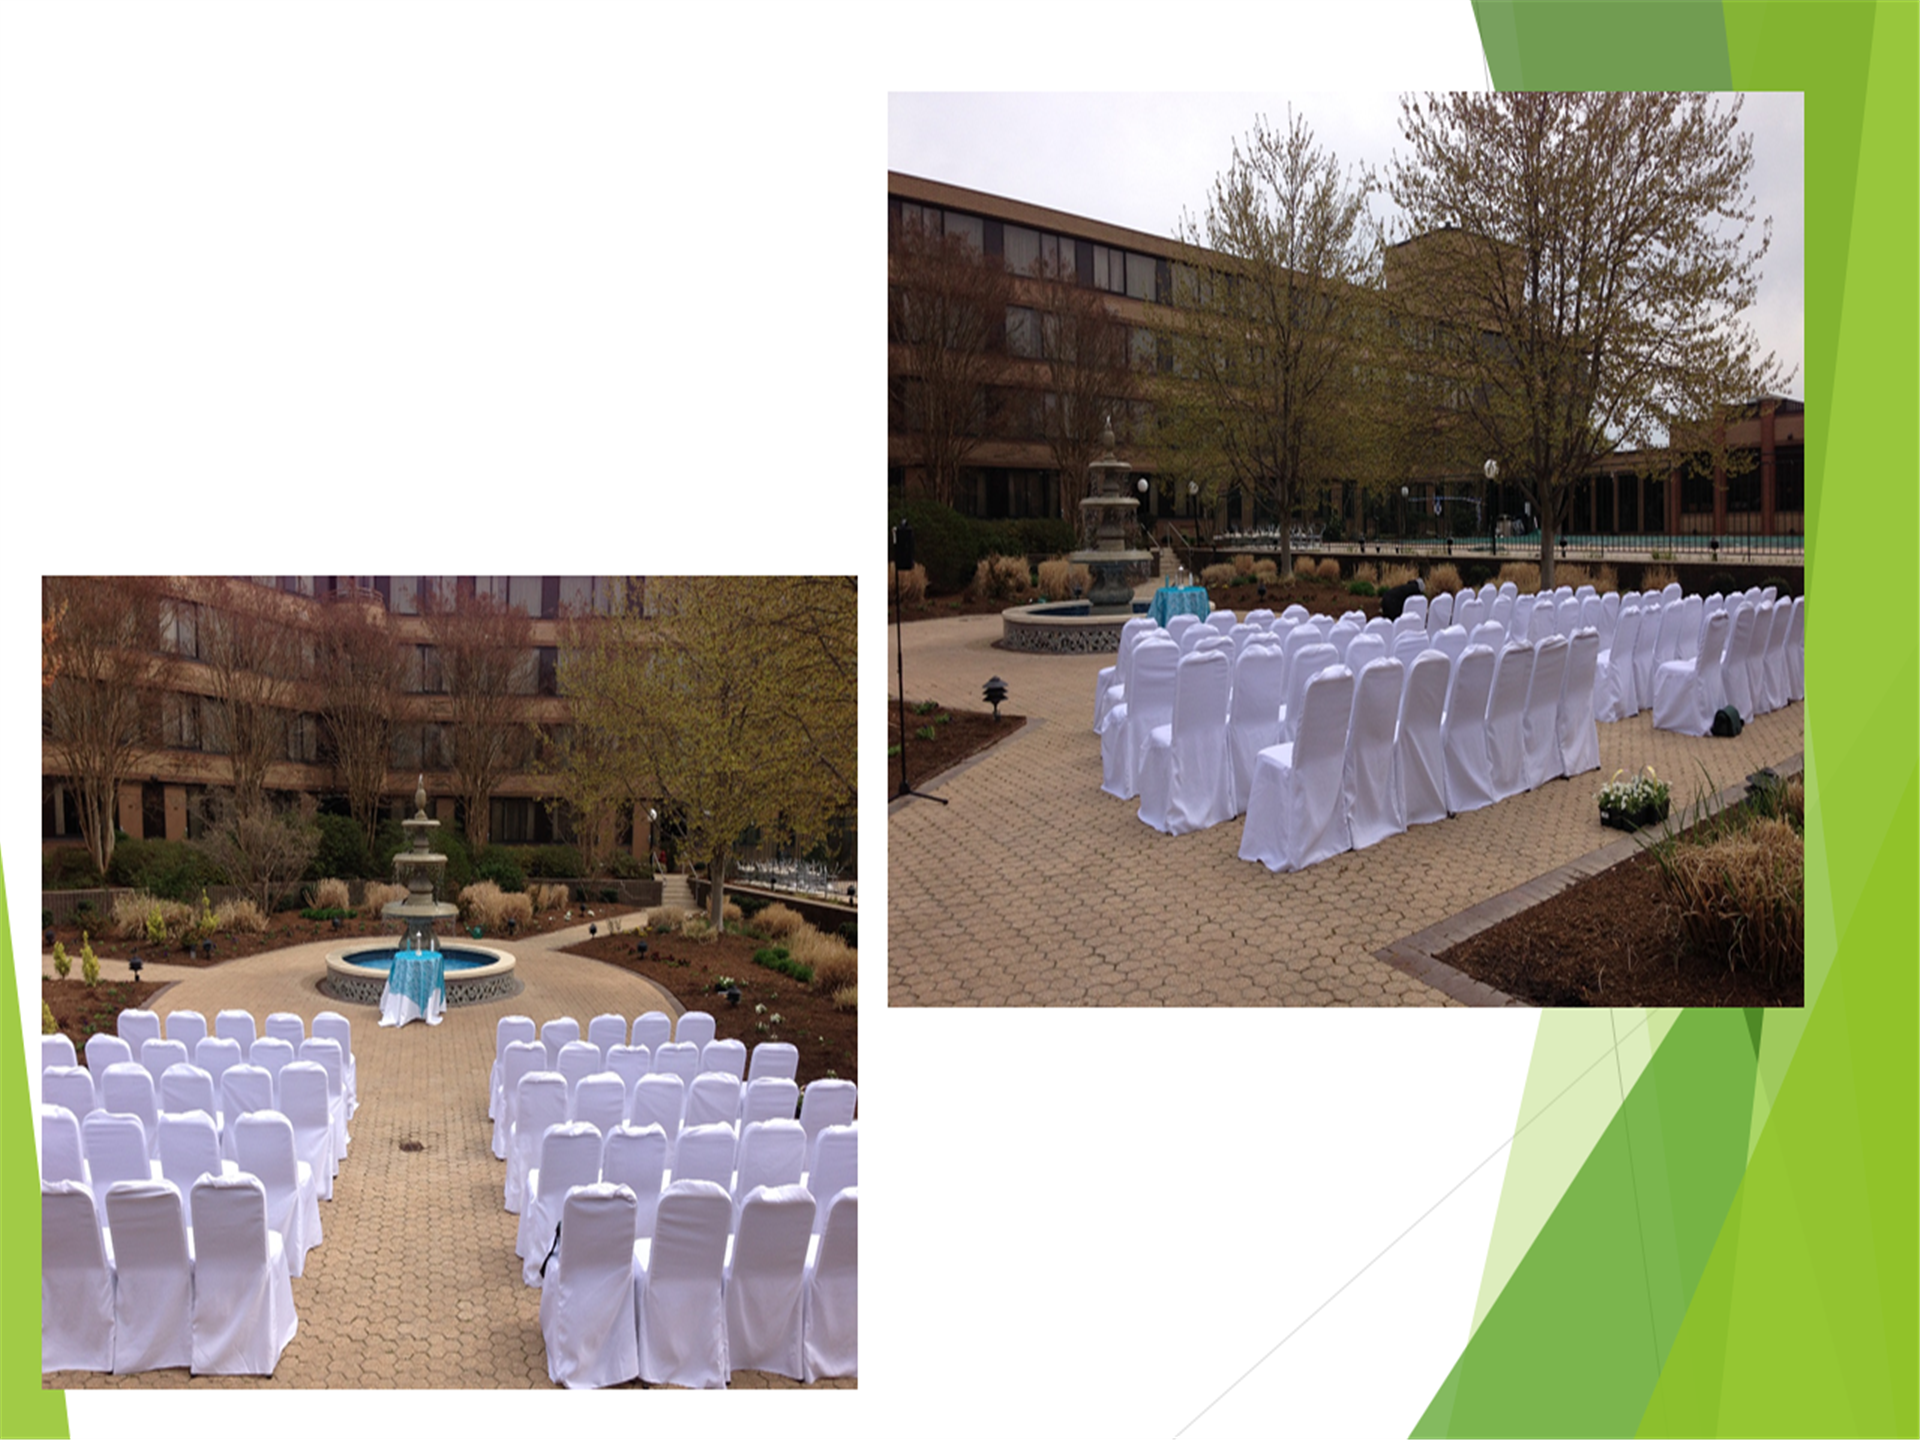 two images of the courtyard area setup for a wedding ceremony